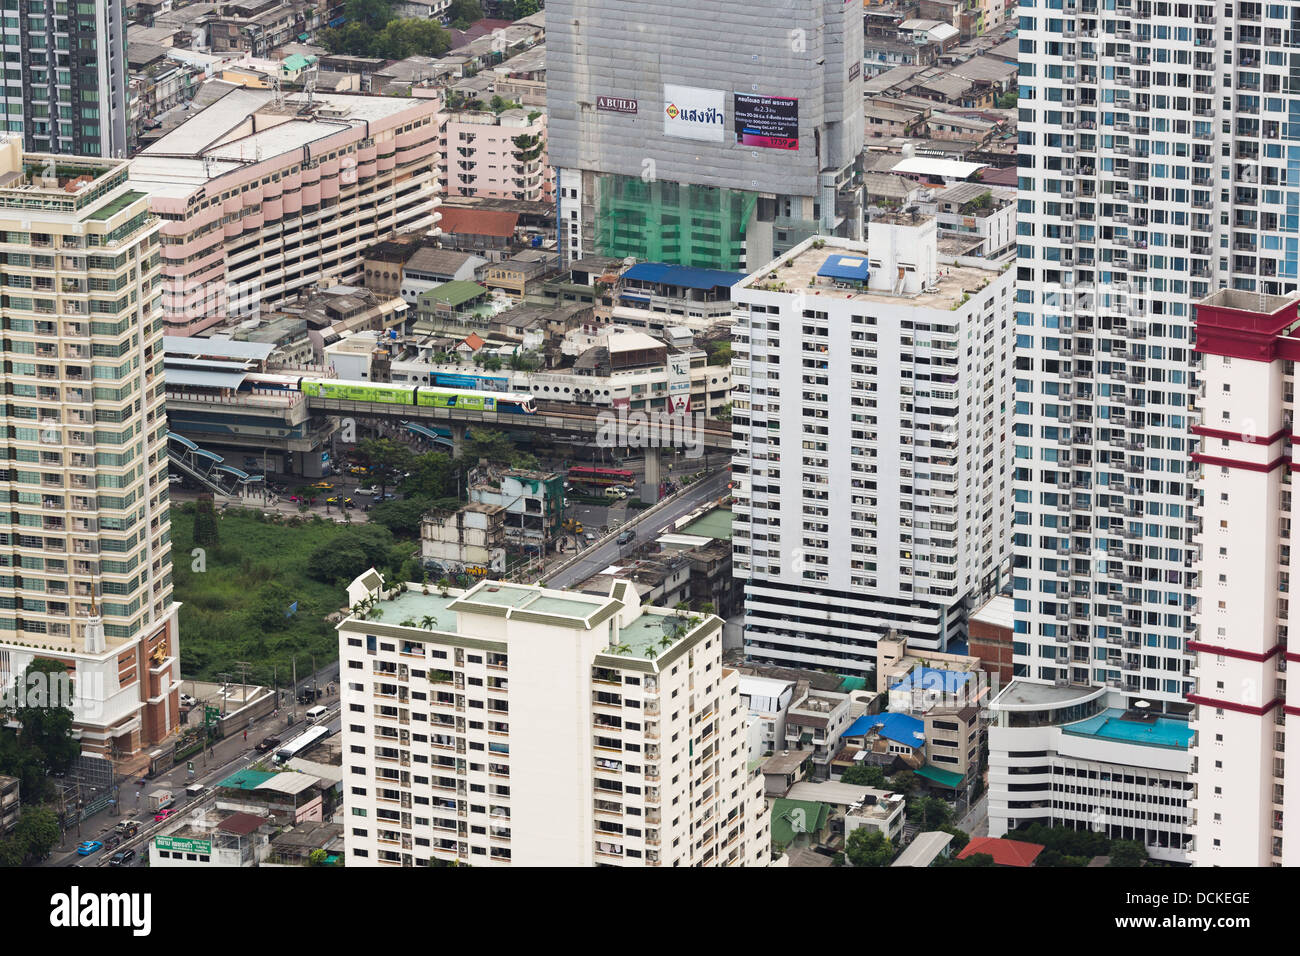 A view of central Bangkok, the capital city of Thailand, with the skytrain (BTS) and many residential towers (condo) - Stock Image